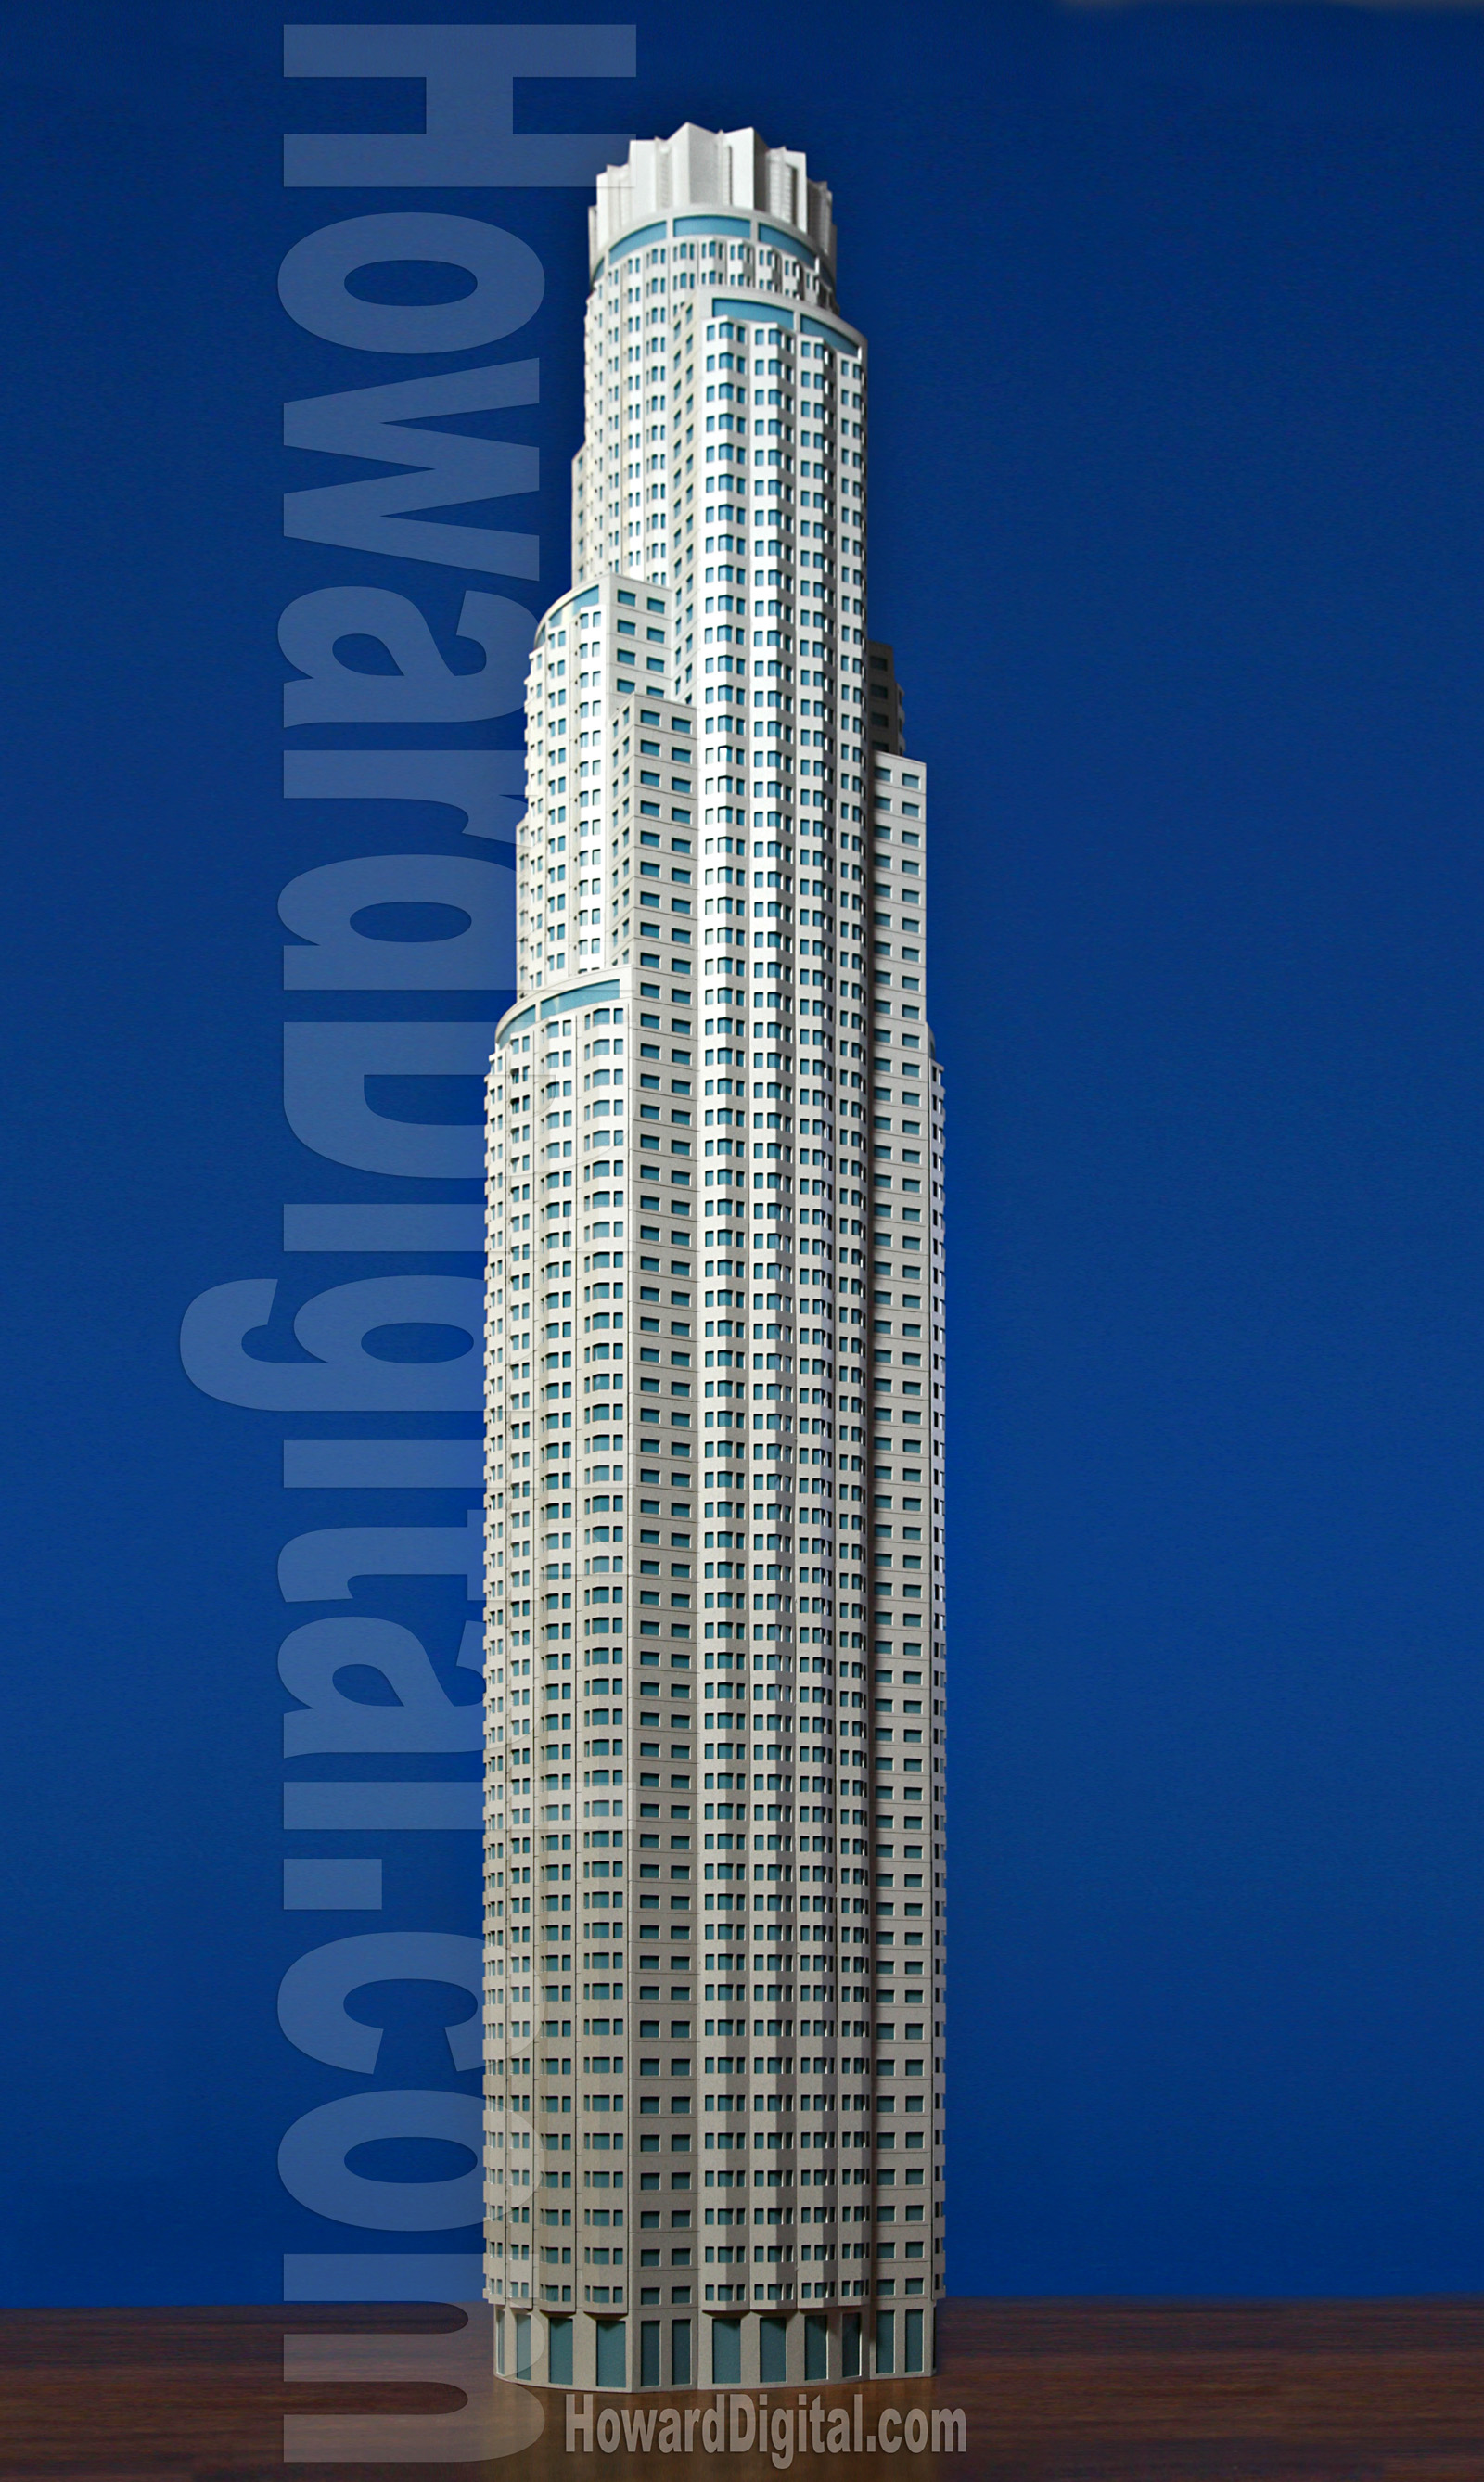 US Bank Tower - Howard Architectural Models, Architectural Model